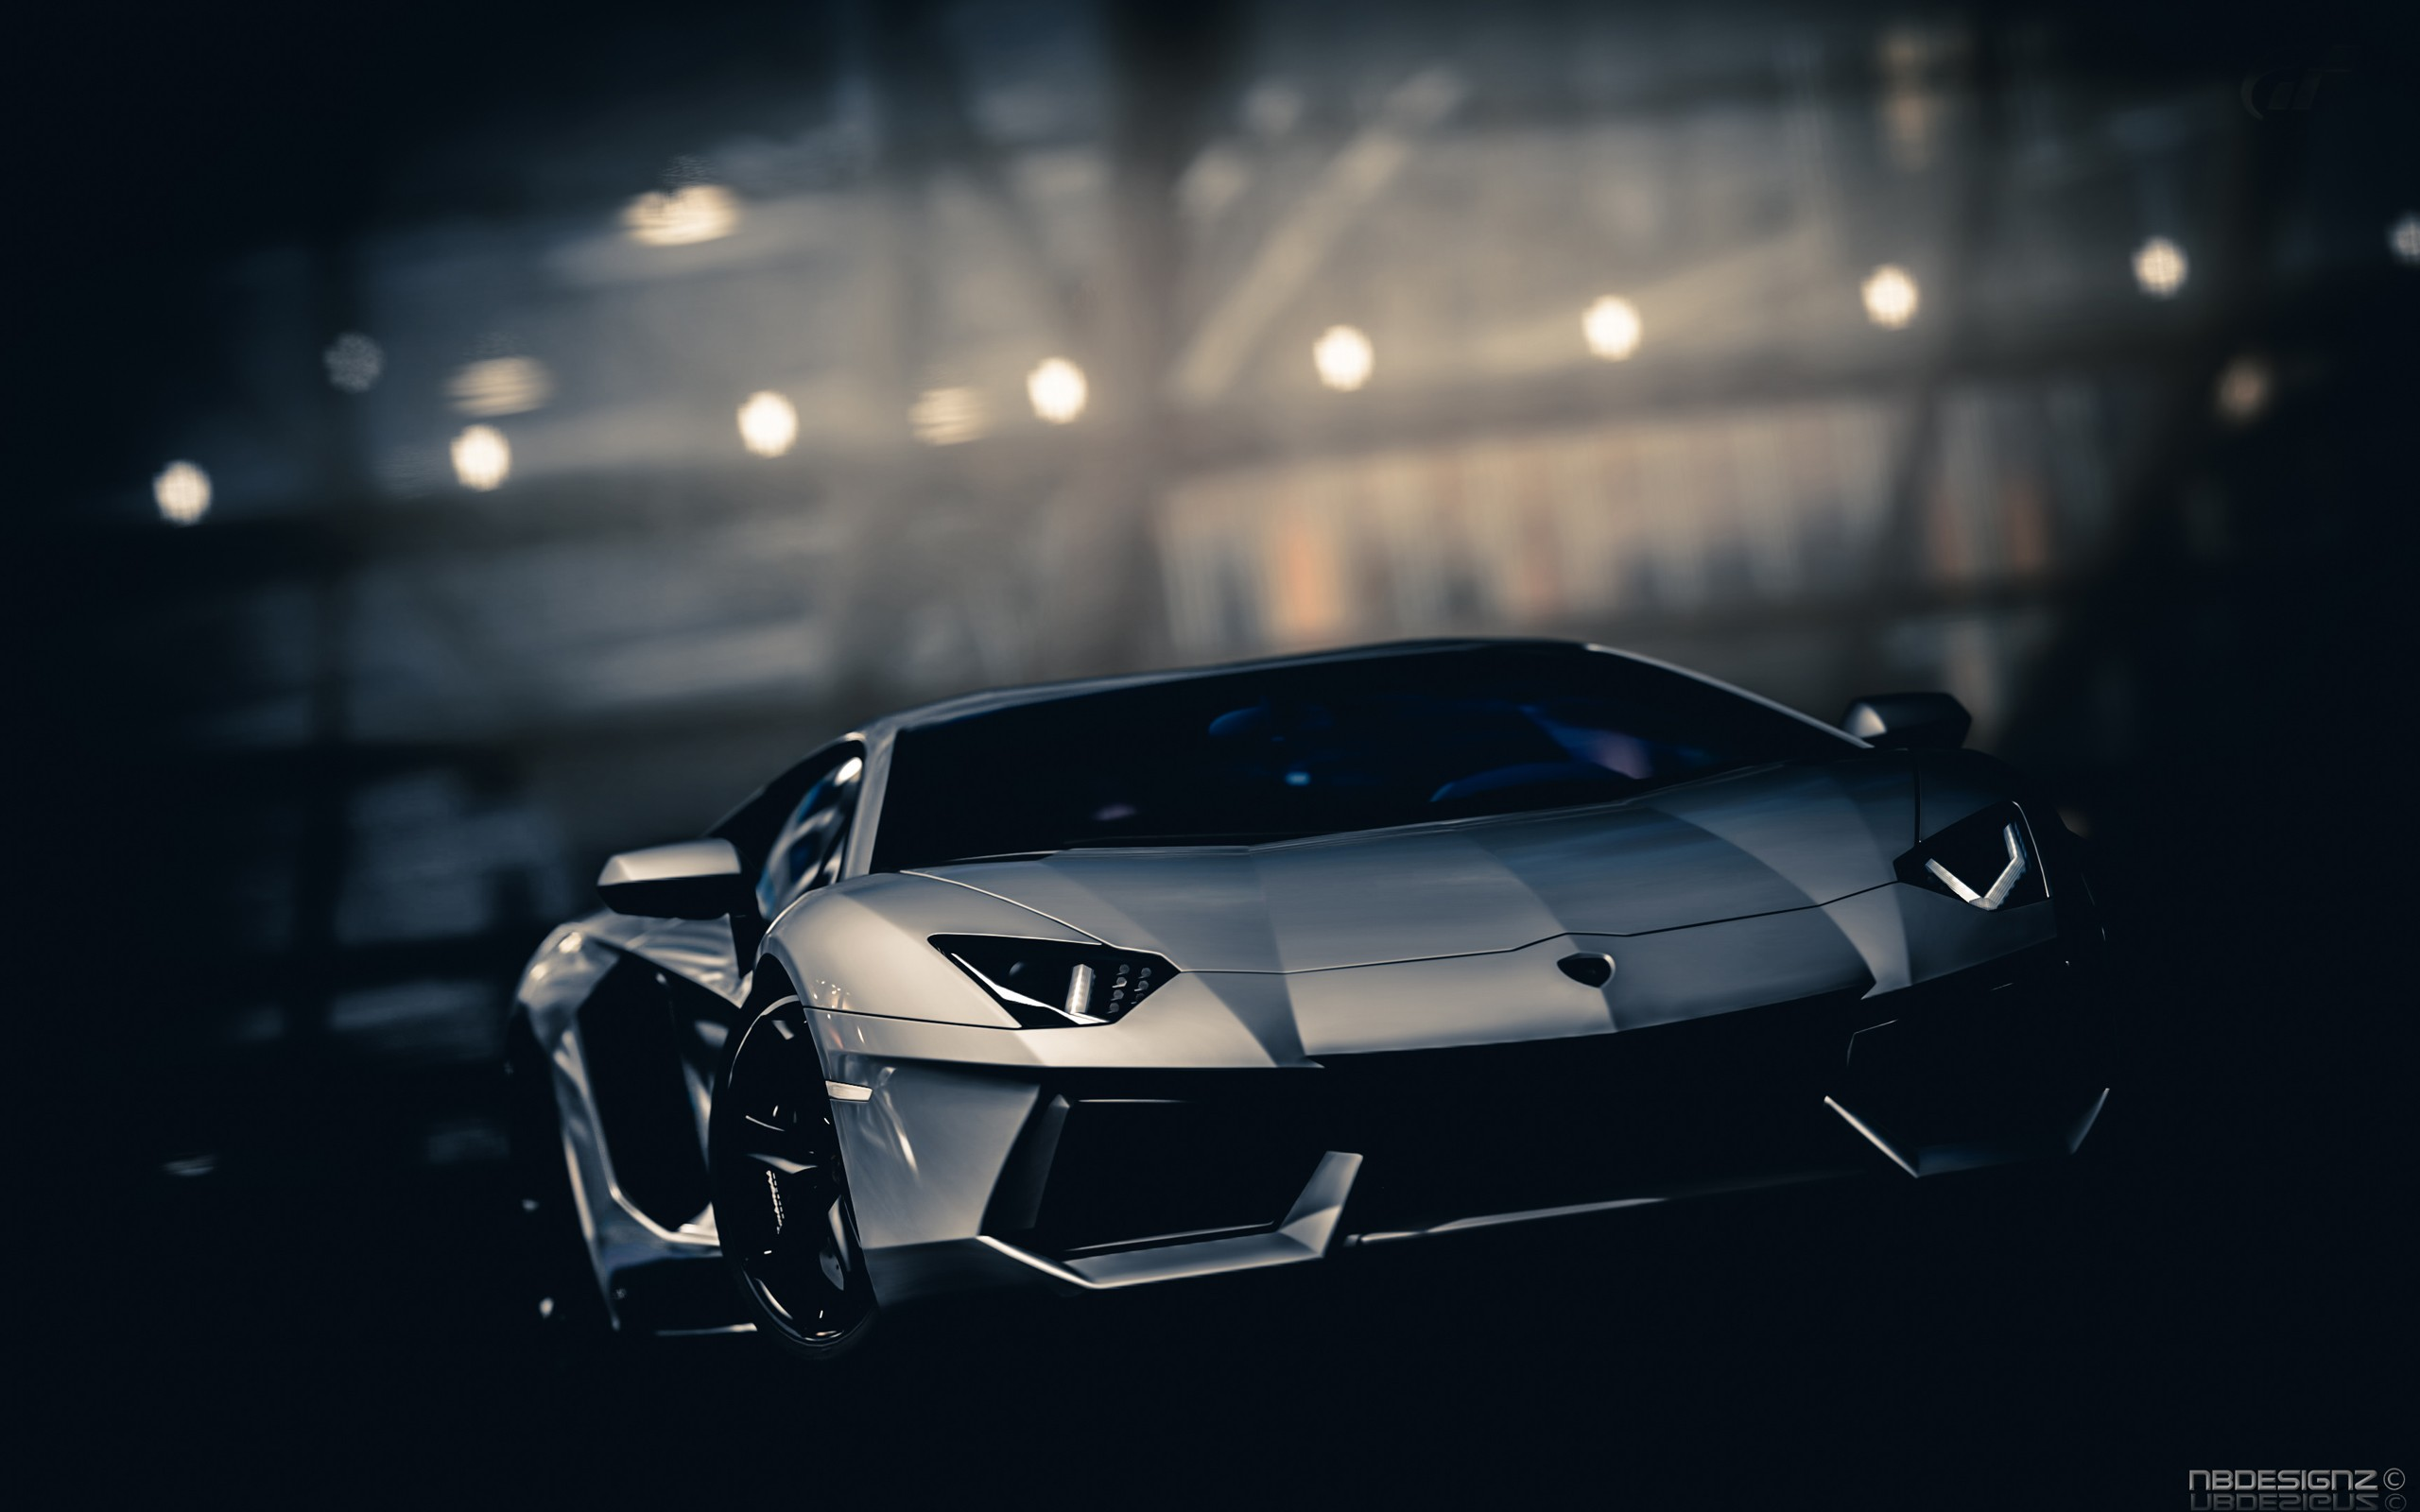 Car Wallpaper Download For Pc